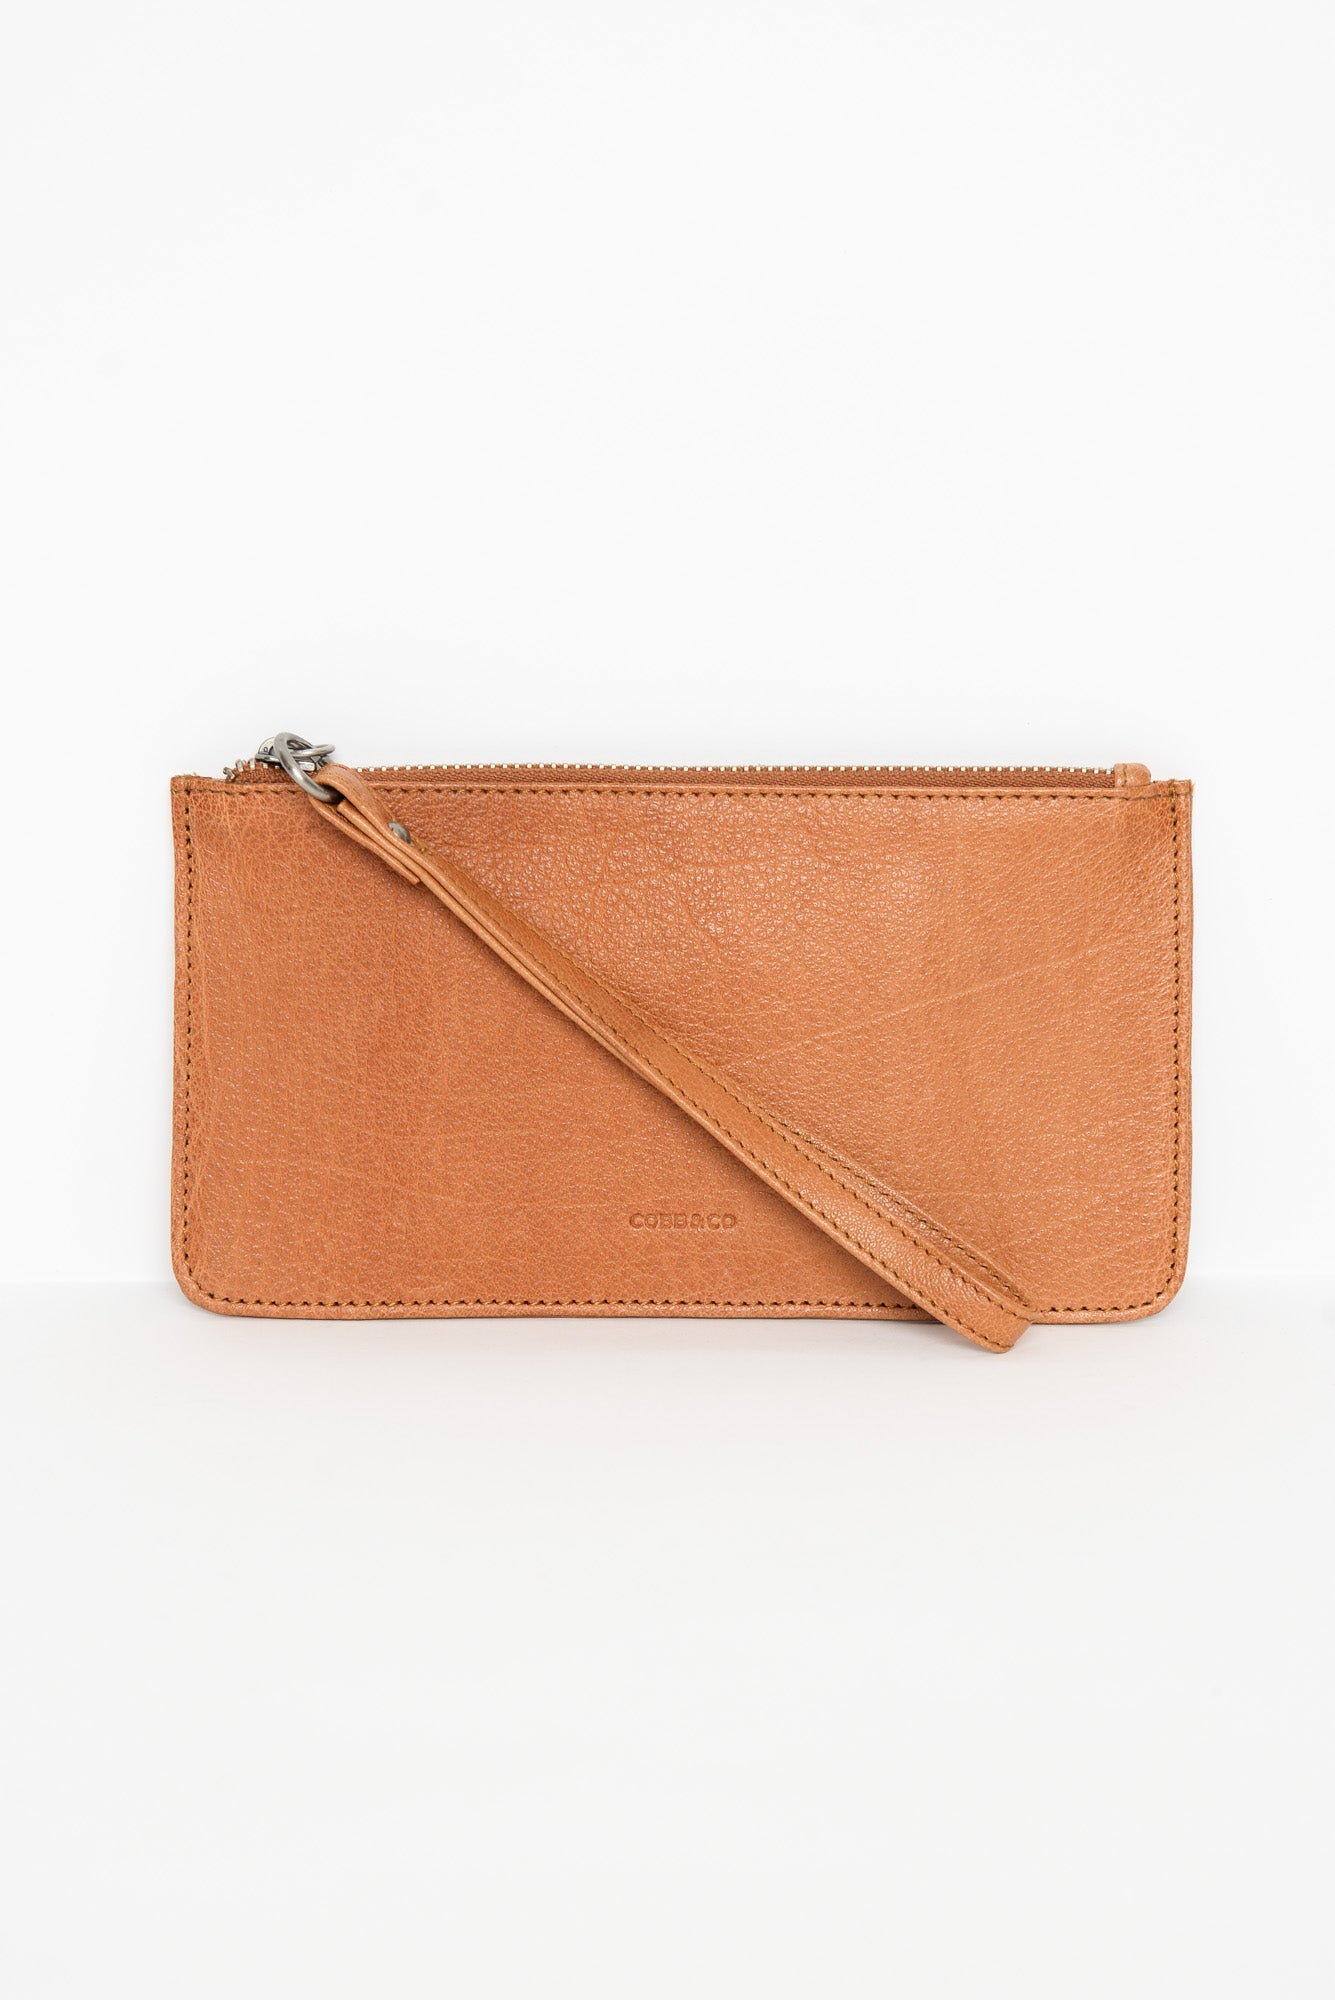 Vaucluse Tan Leather Medium Pouch